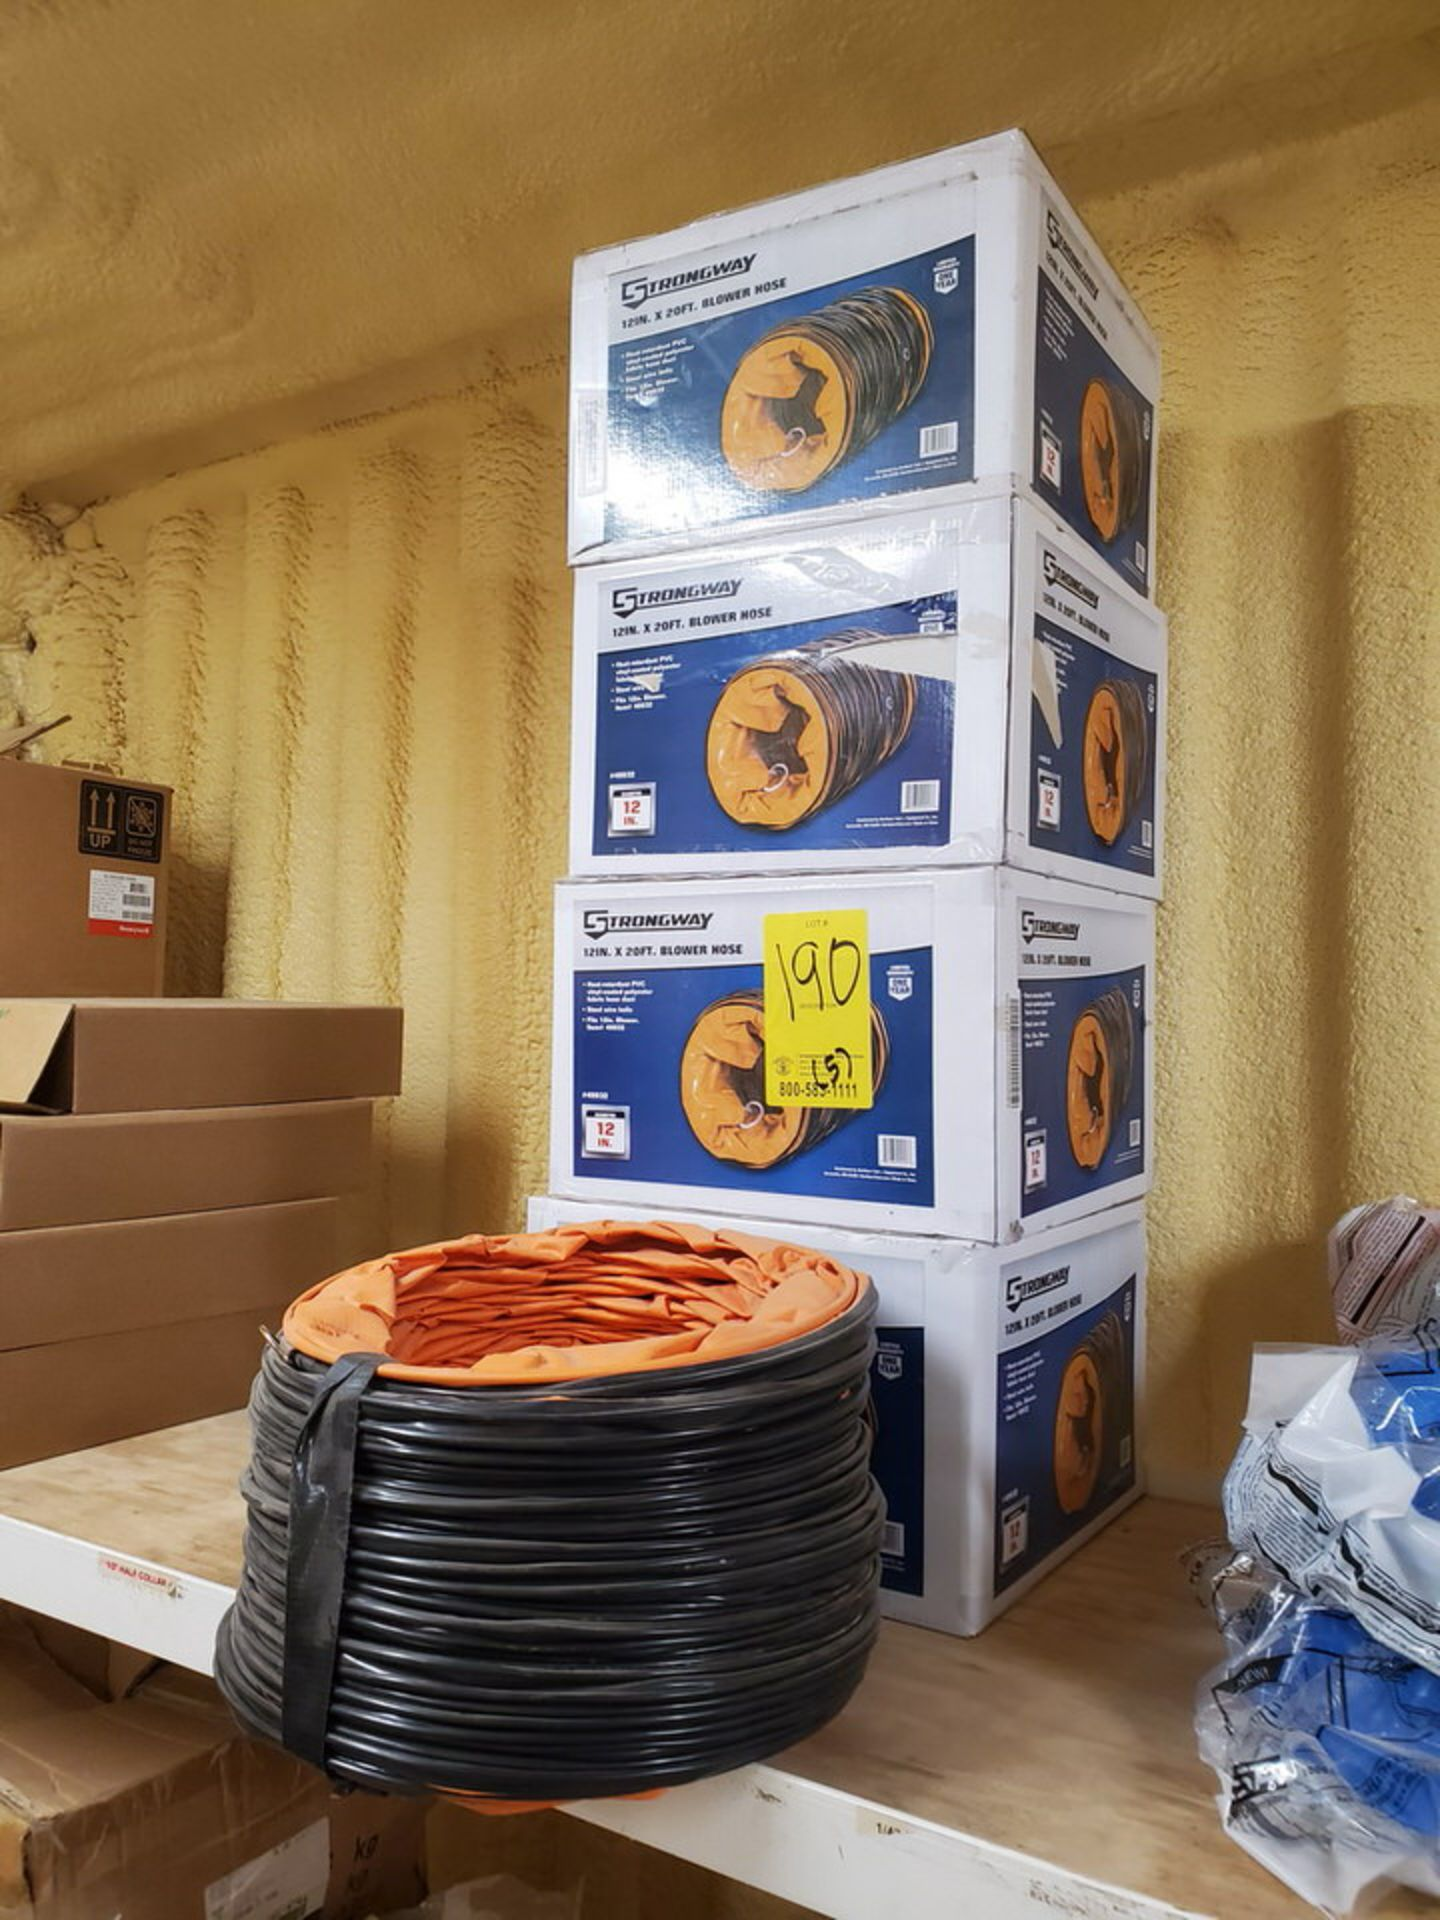 """Strongway 12"""" x 20' Blower Hoses - Image 2 of 4"""